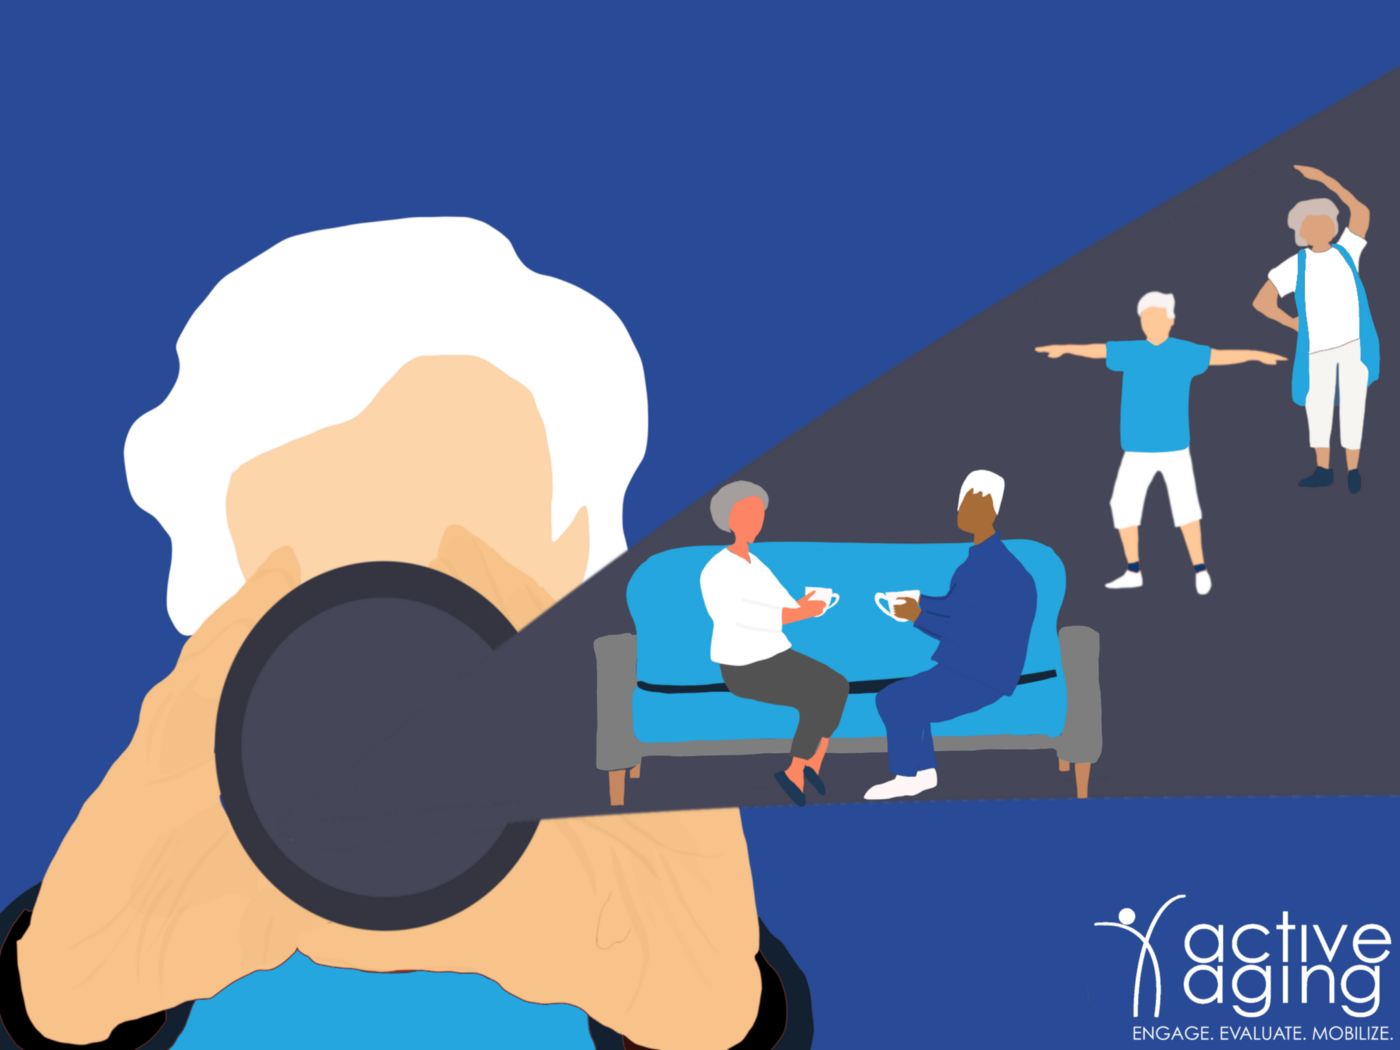 An older adult woman sees older adult's physical and social health through her own lens